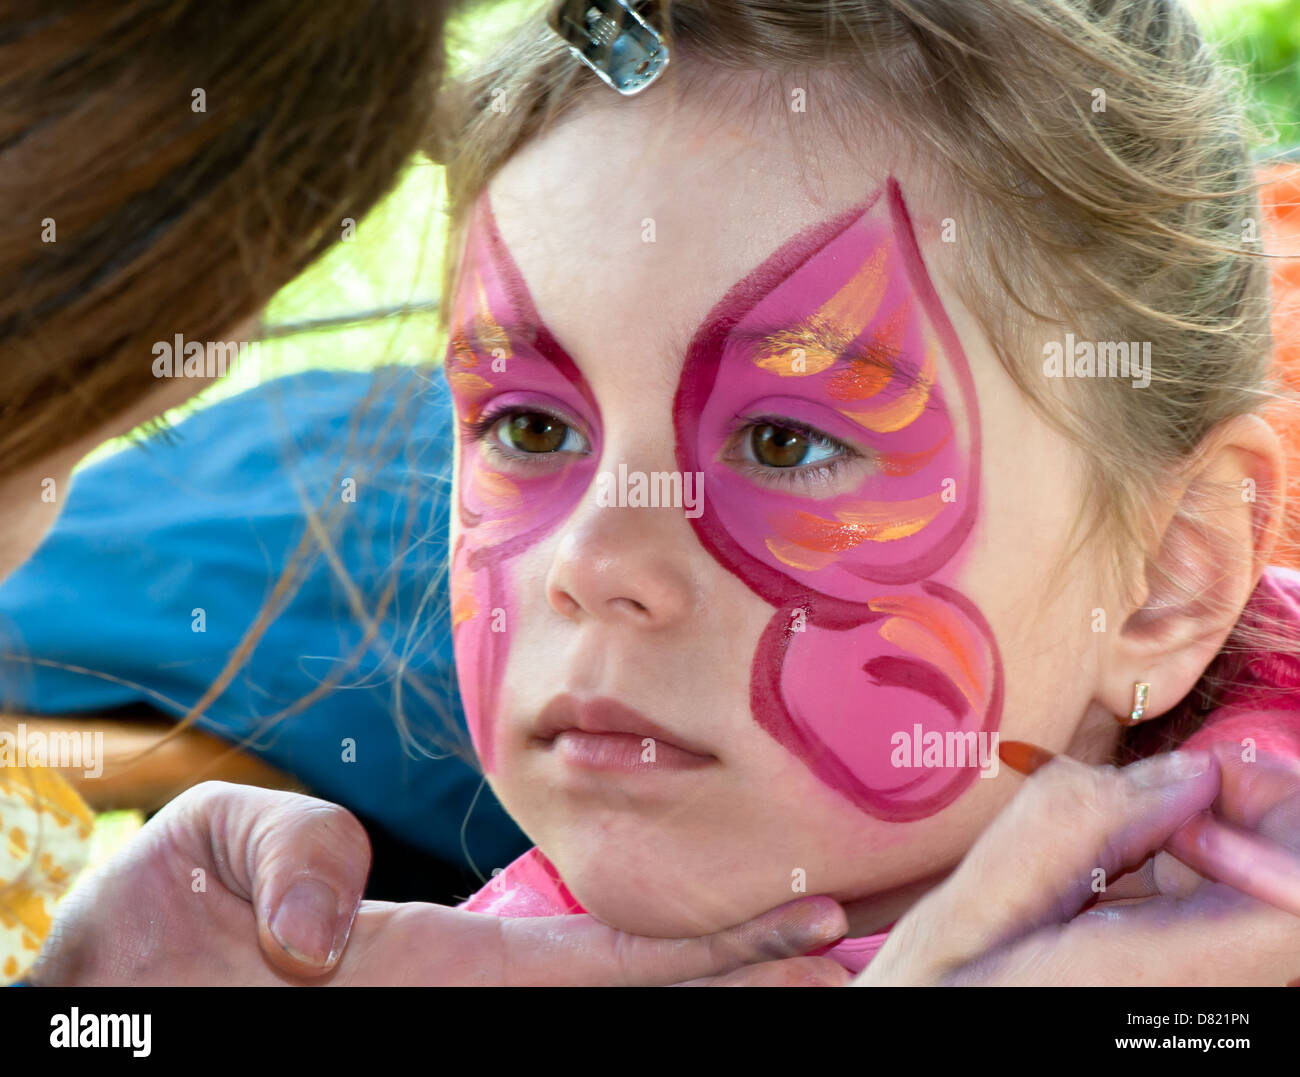 Artist, Creativity, Body Adornment, Body Paint, Caucasian, Indoors, Childhood, Red, Face Paint, Child, Preschool, - Stock Image